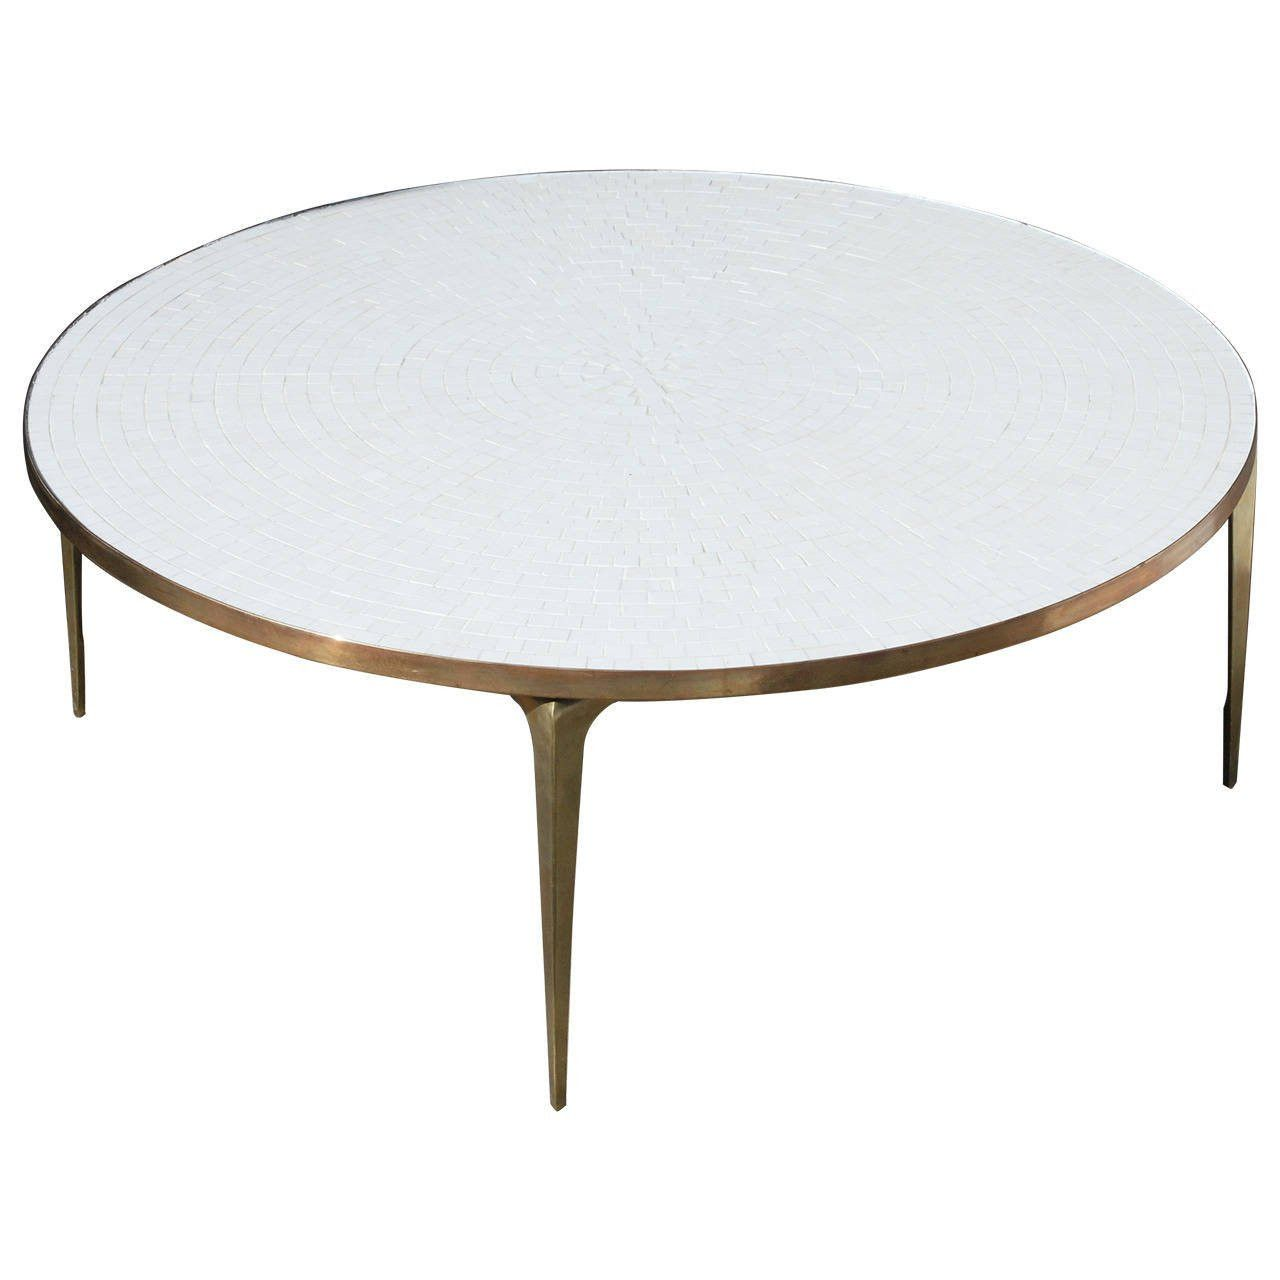 99 round brass coffee table best bedroom furniture check more at http